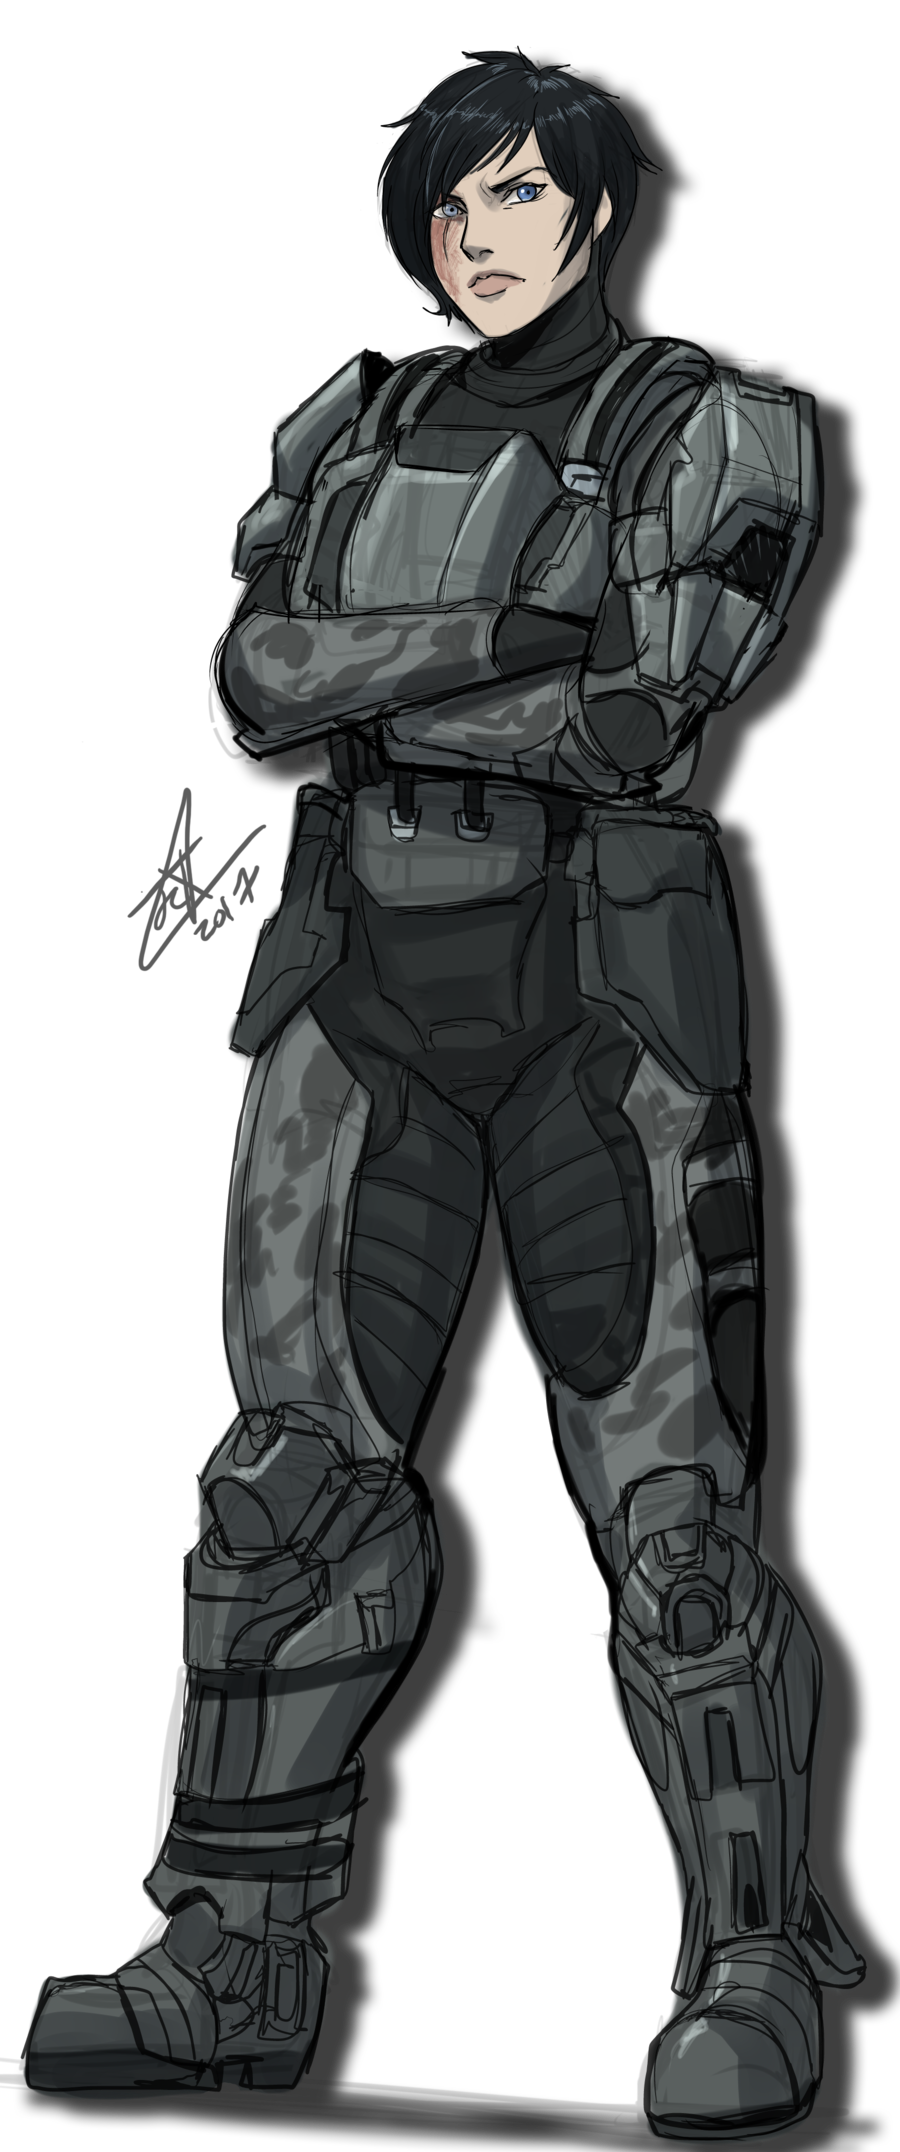 Odst drawing female. Sketch comm vi by